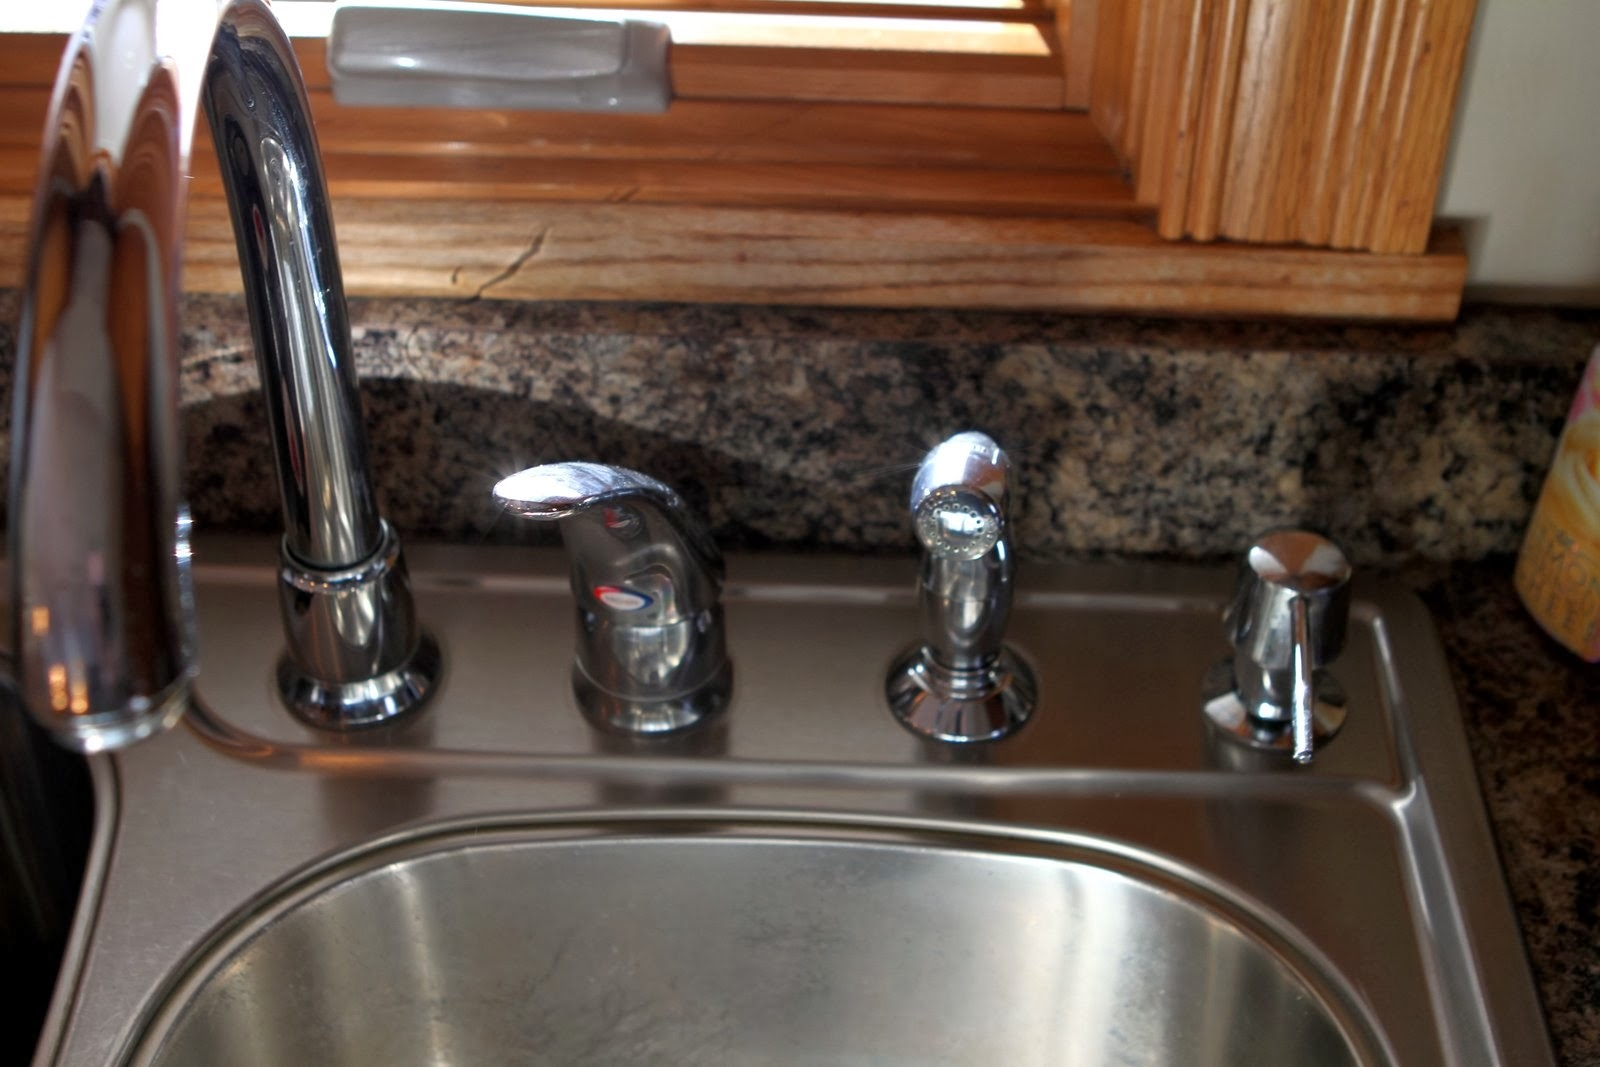 Ideas, moen 1225 kitchen faucet cartridge repair or replacement regarding size 1600 x 1067  .